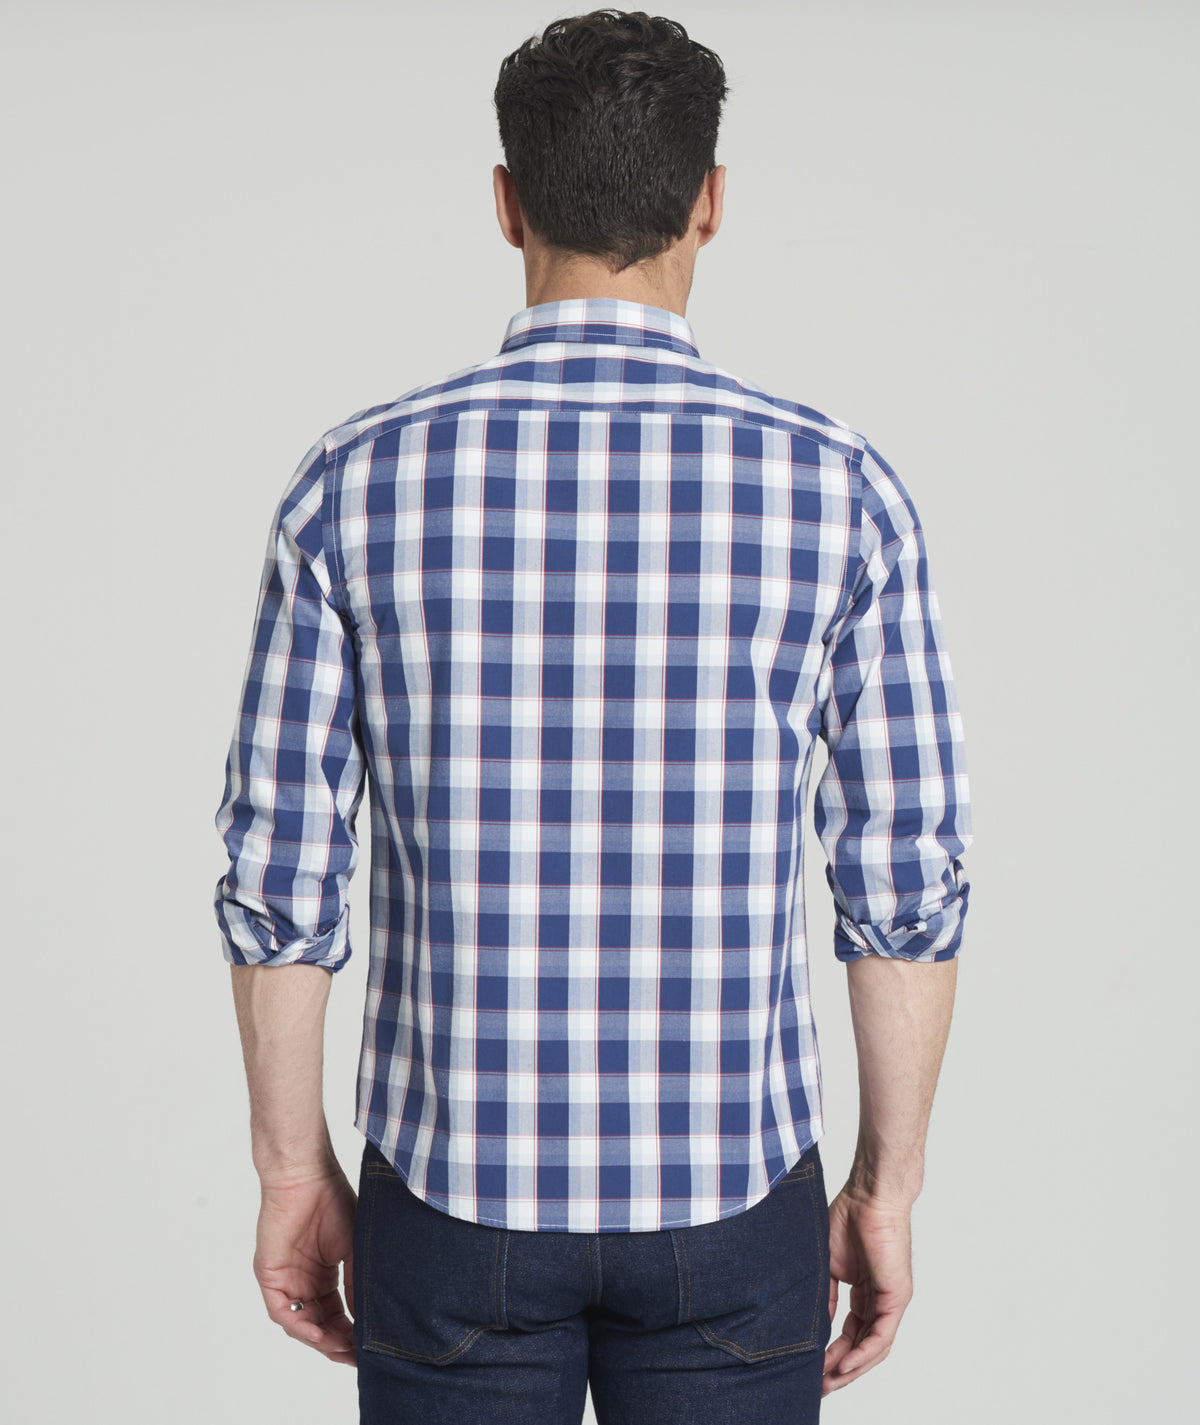 St. Pierre - Button Down Collar